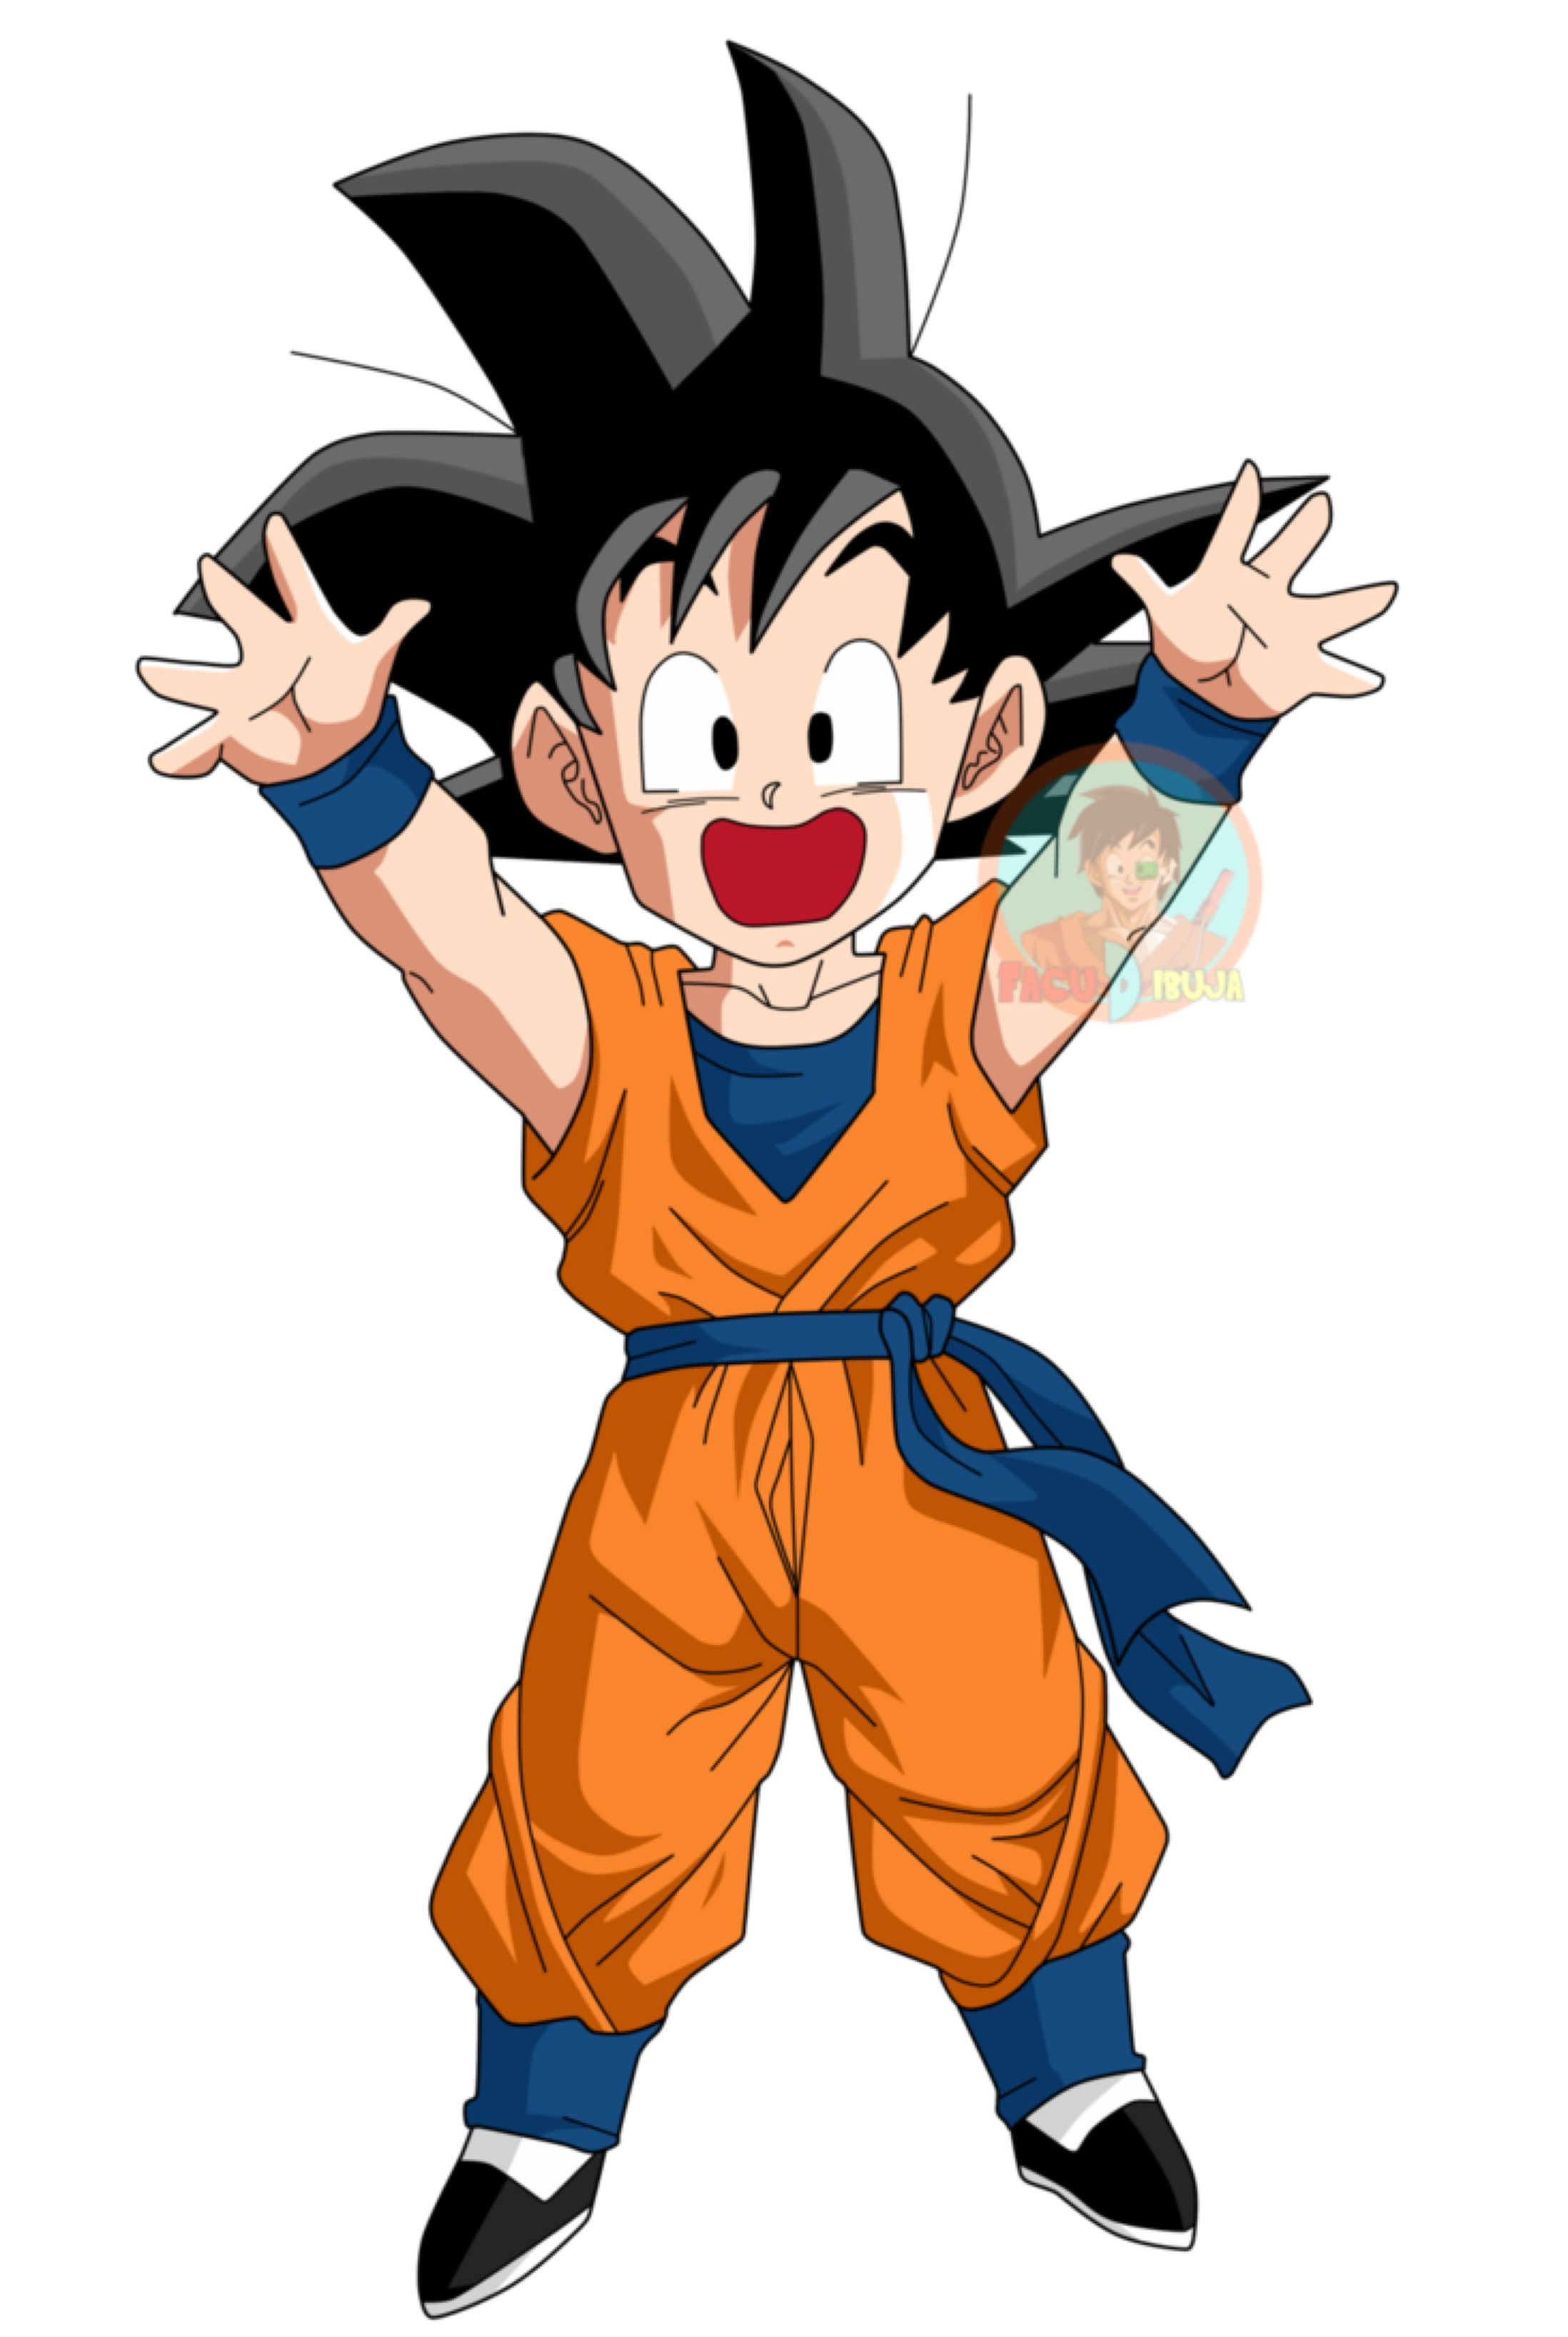 kid goten dbs v 3 by antoniossss on deviantart goten and trunks